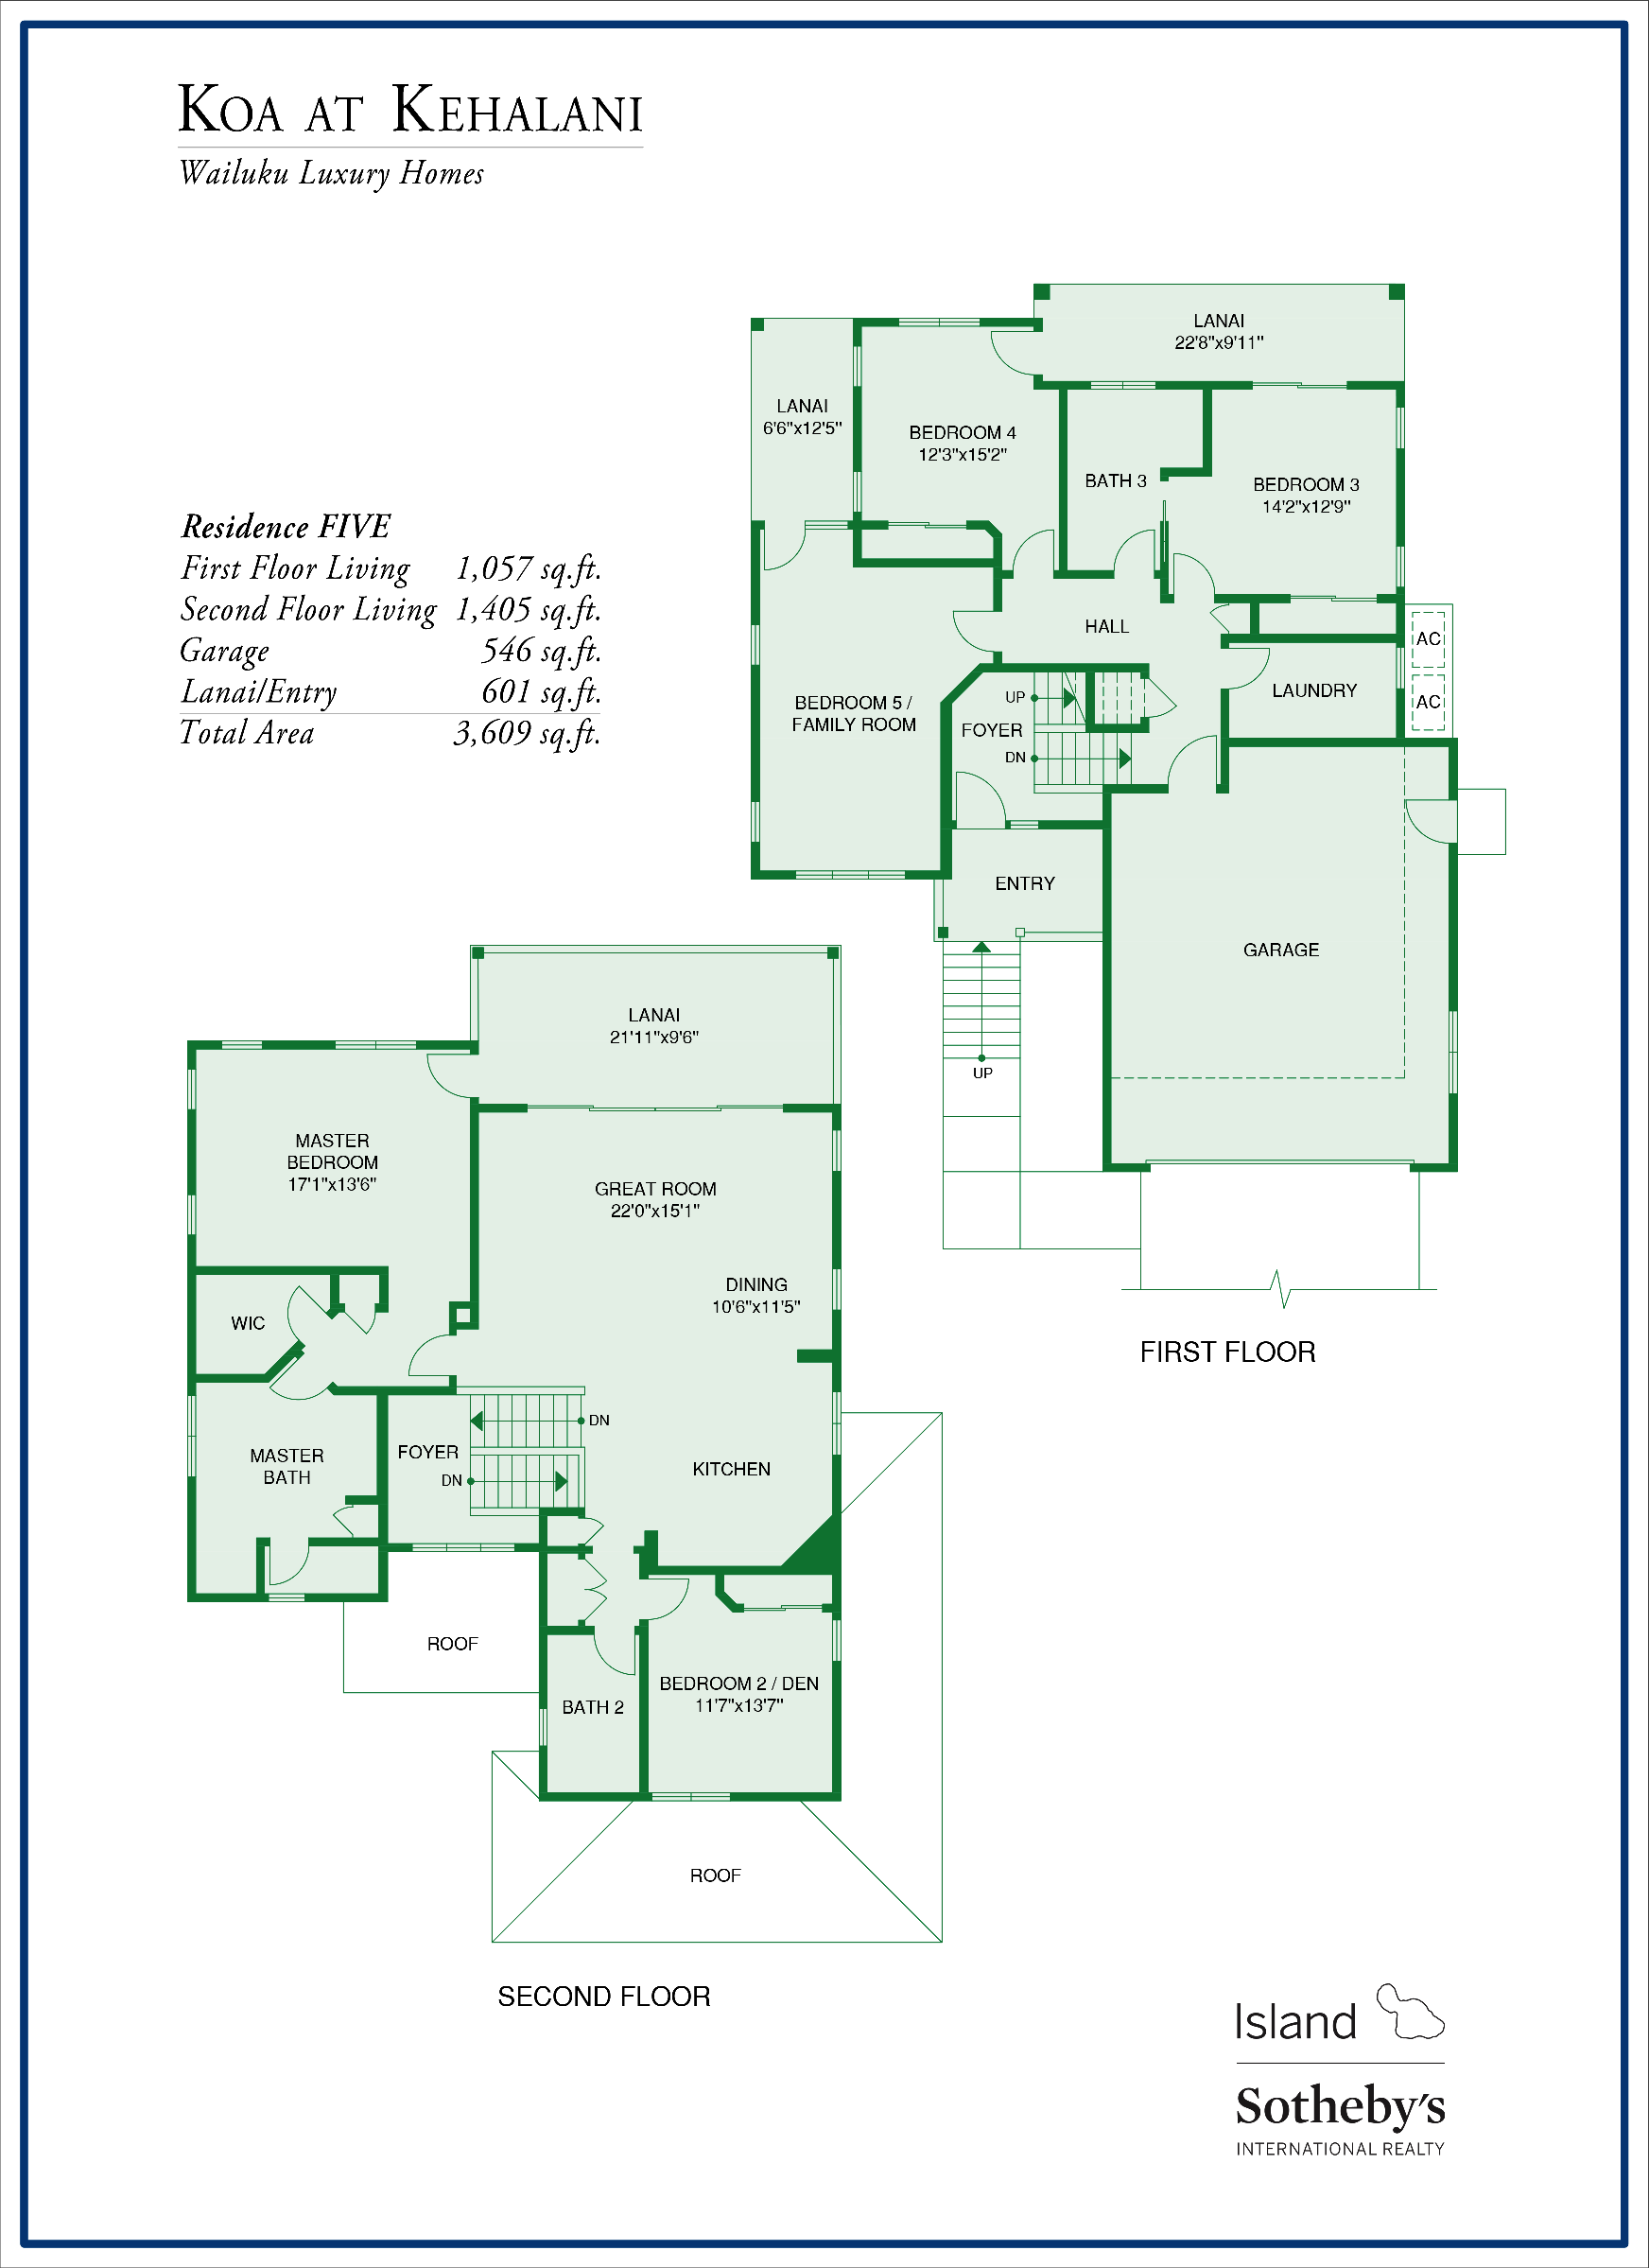 koa at kehalani floorplans all